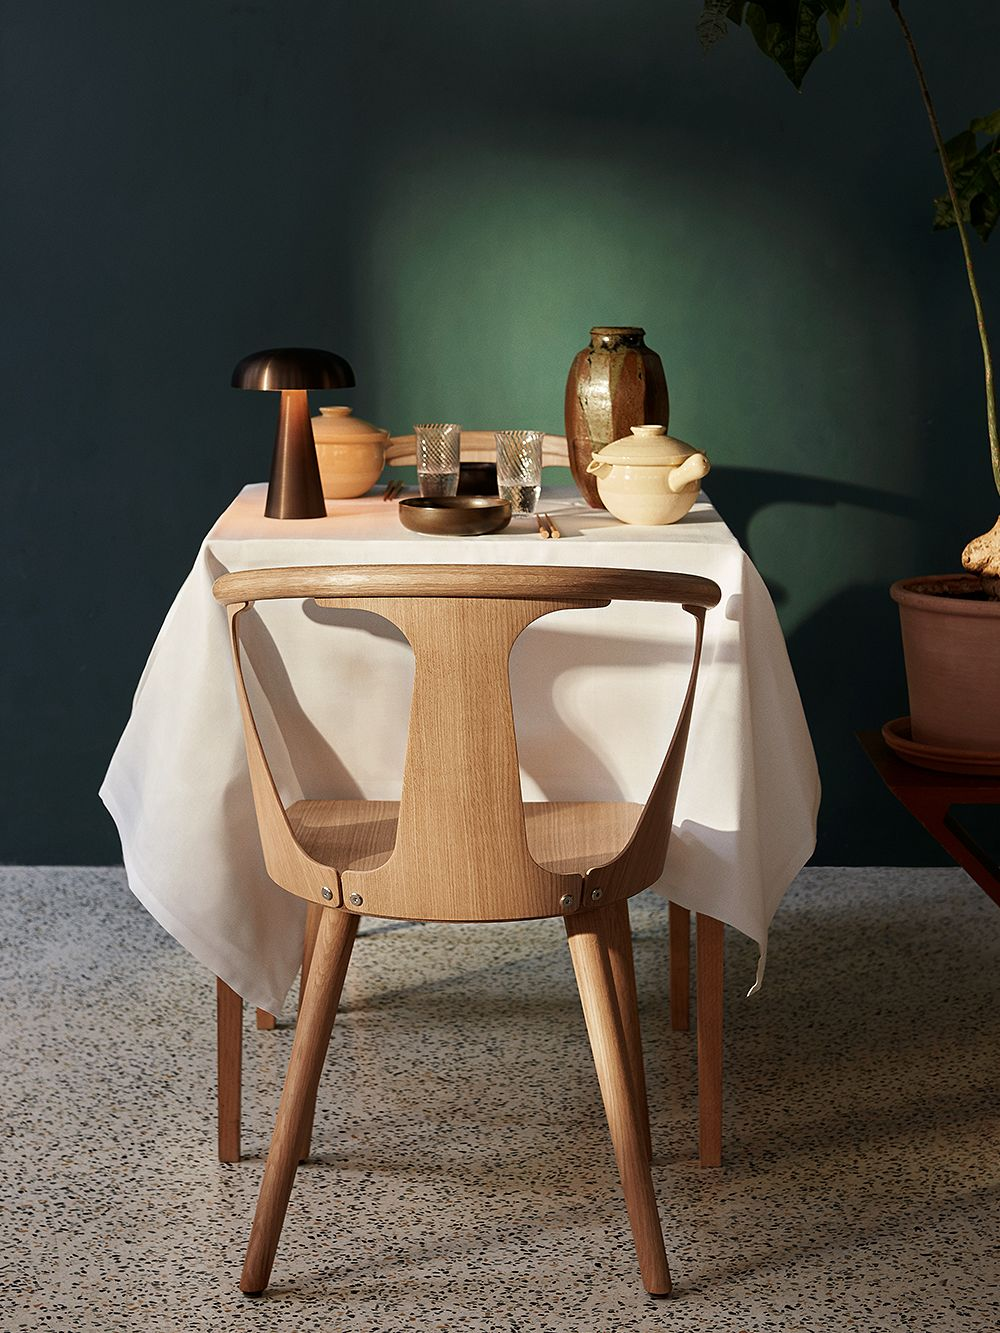 &Tradition In Between SK1 chair, white oiled oak